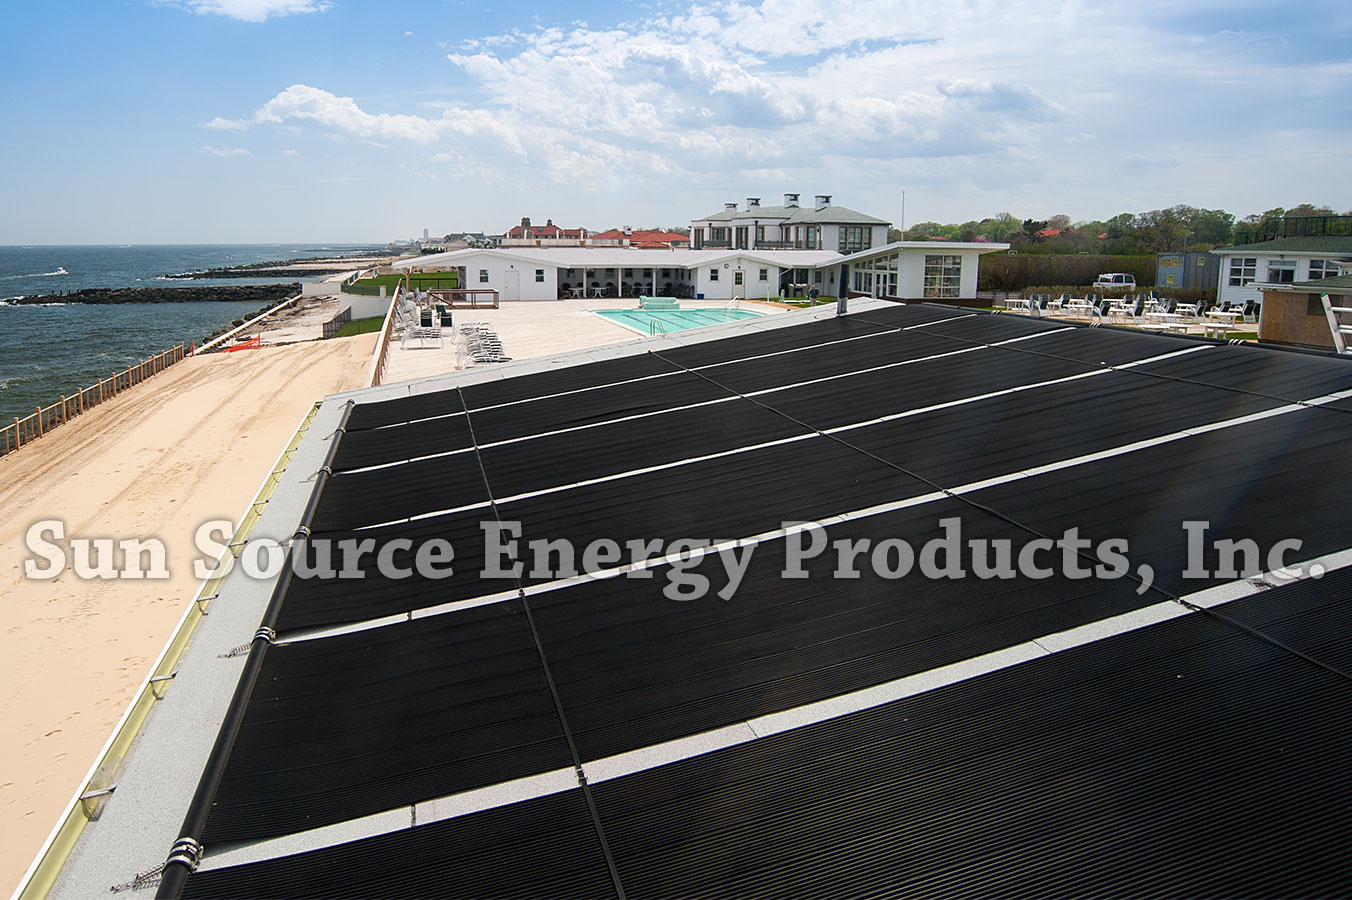 Solar Industries solar pool heating system on Ocean Beach Club, Elberon, NJ